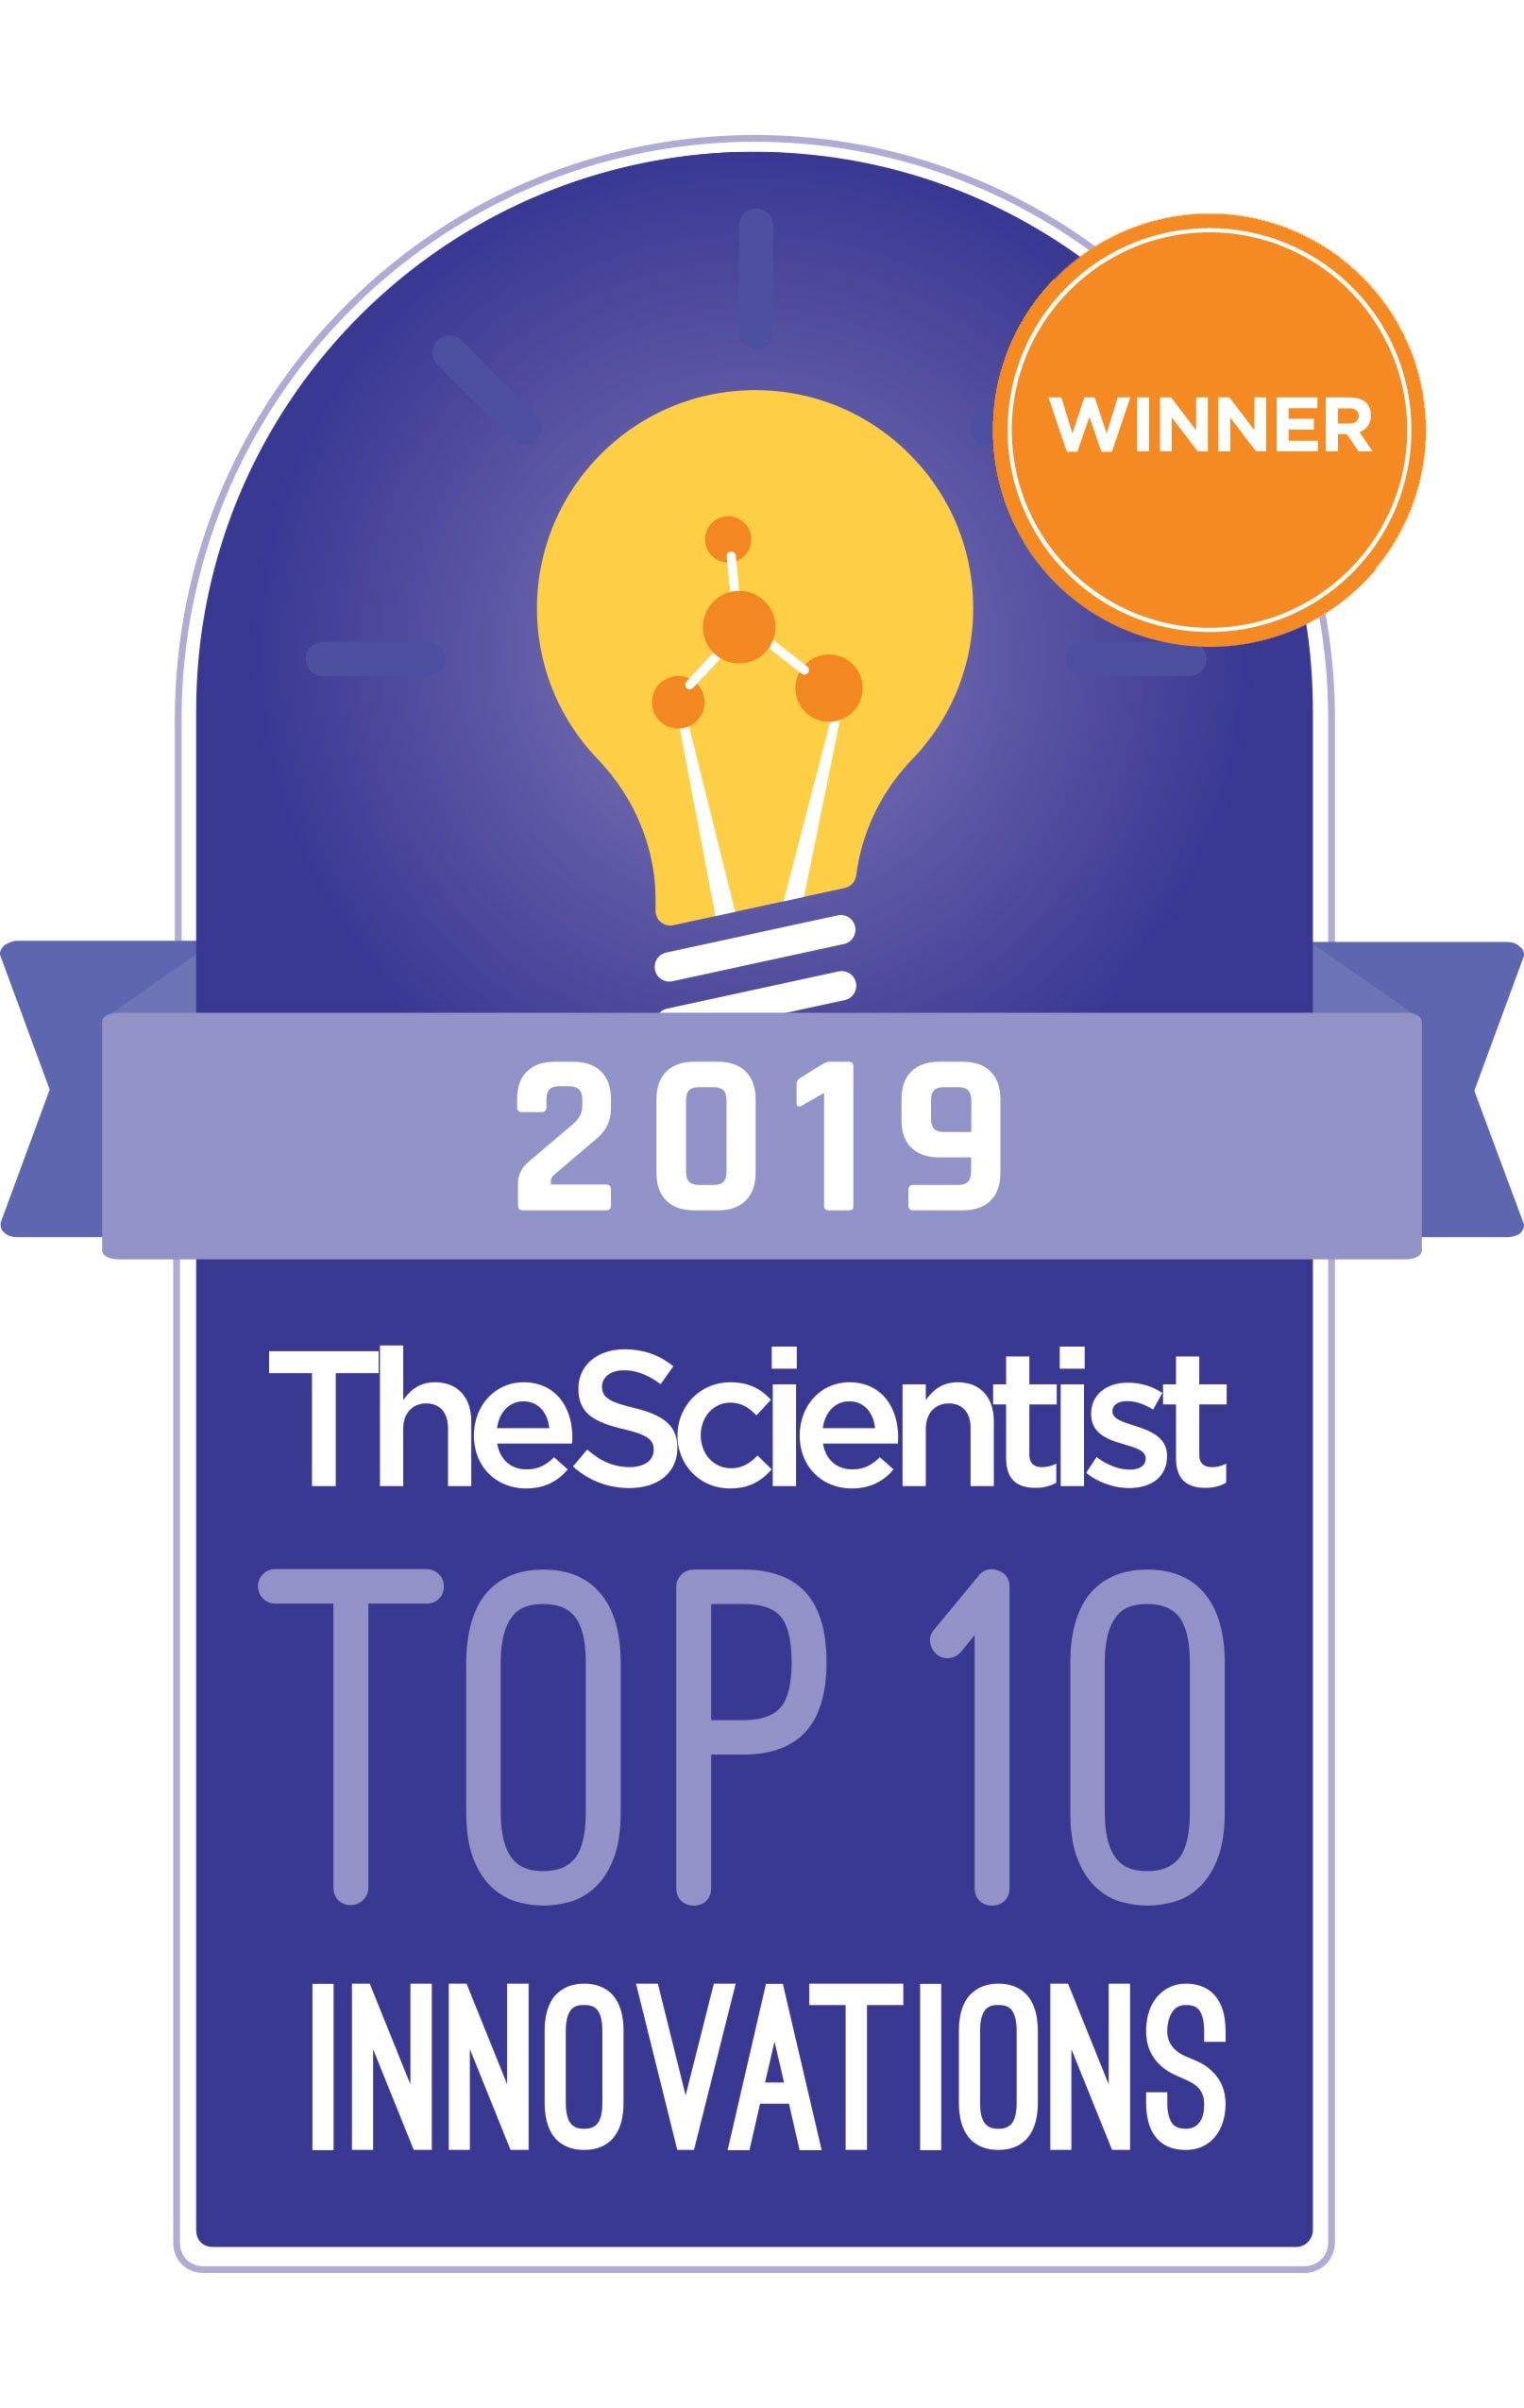 The Scientist top 10 innovations